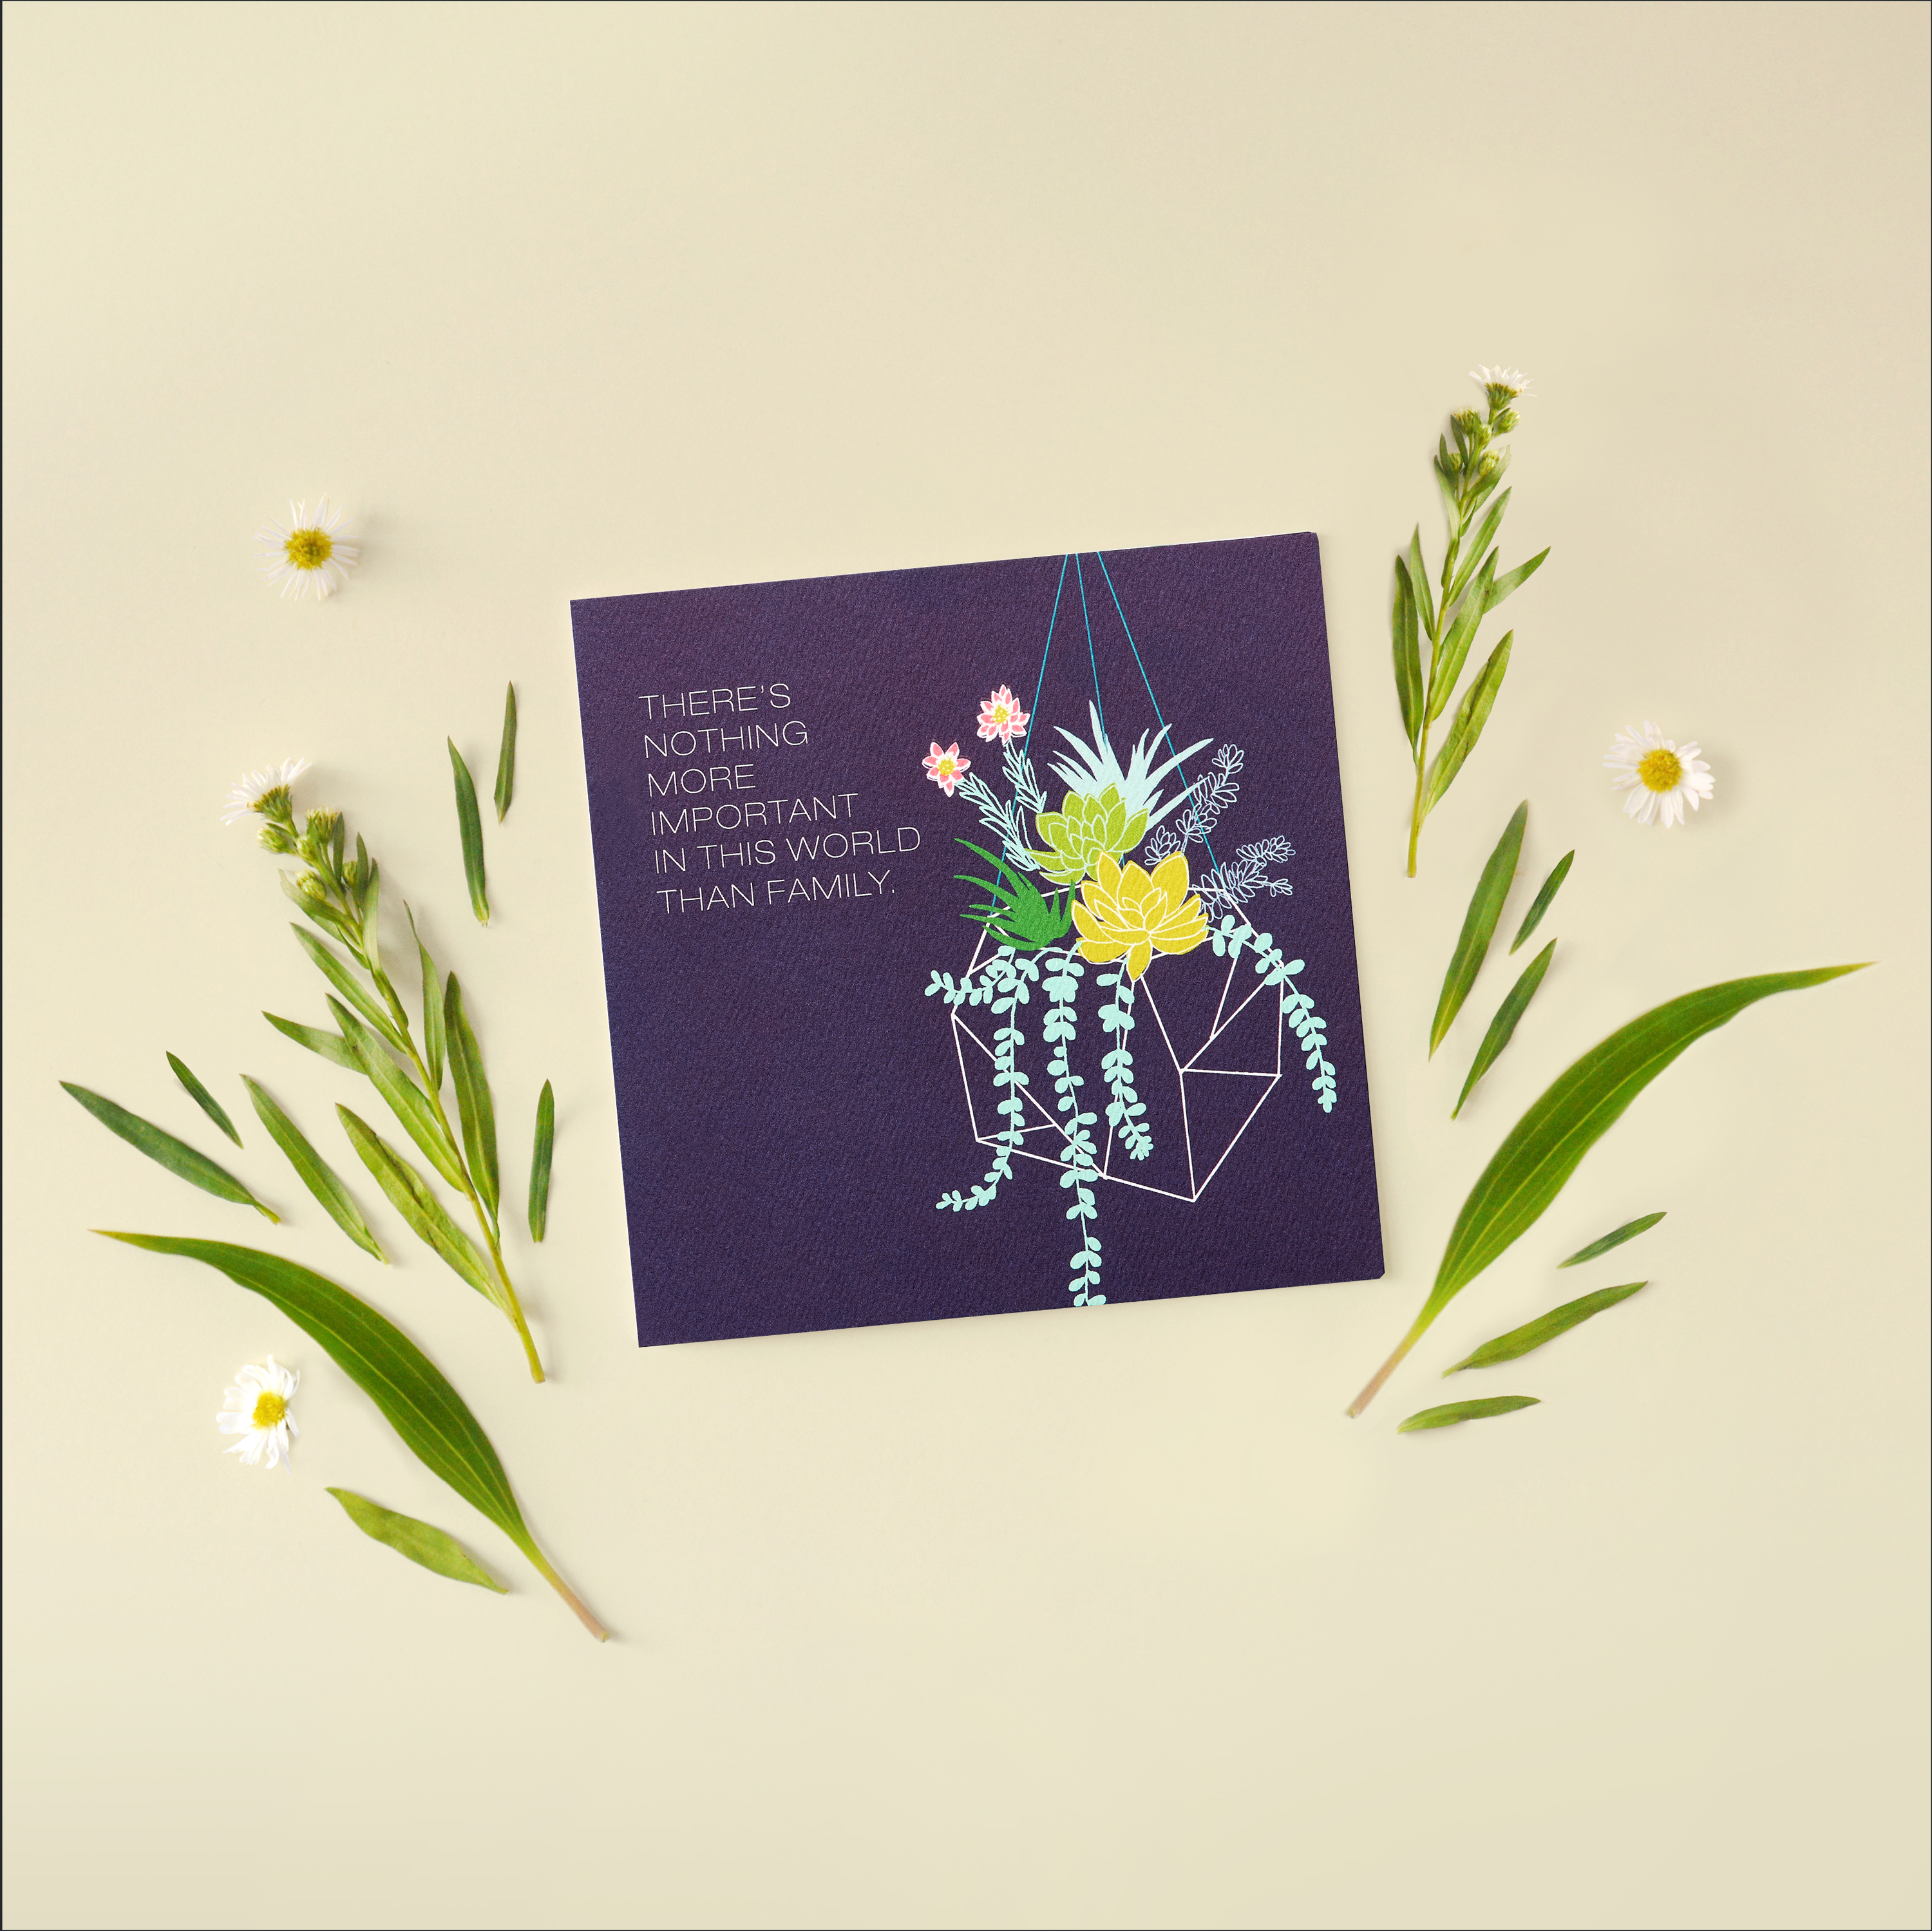 Family Greeting Card - Birthday, Thinking of You, Encouragement image